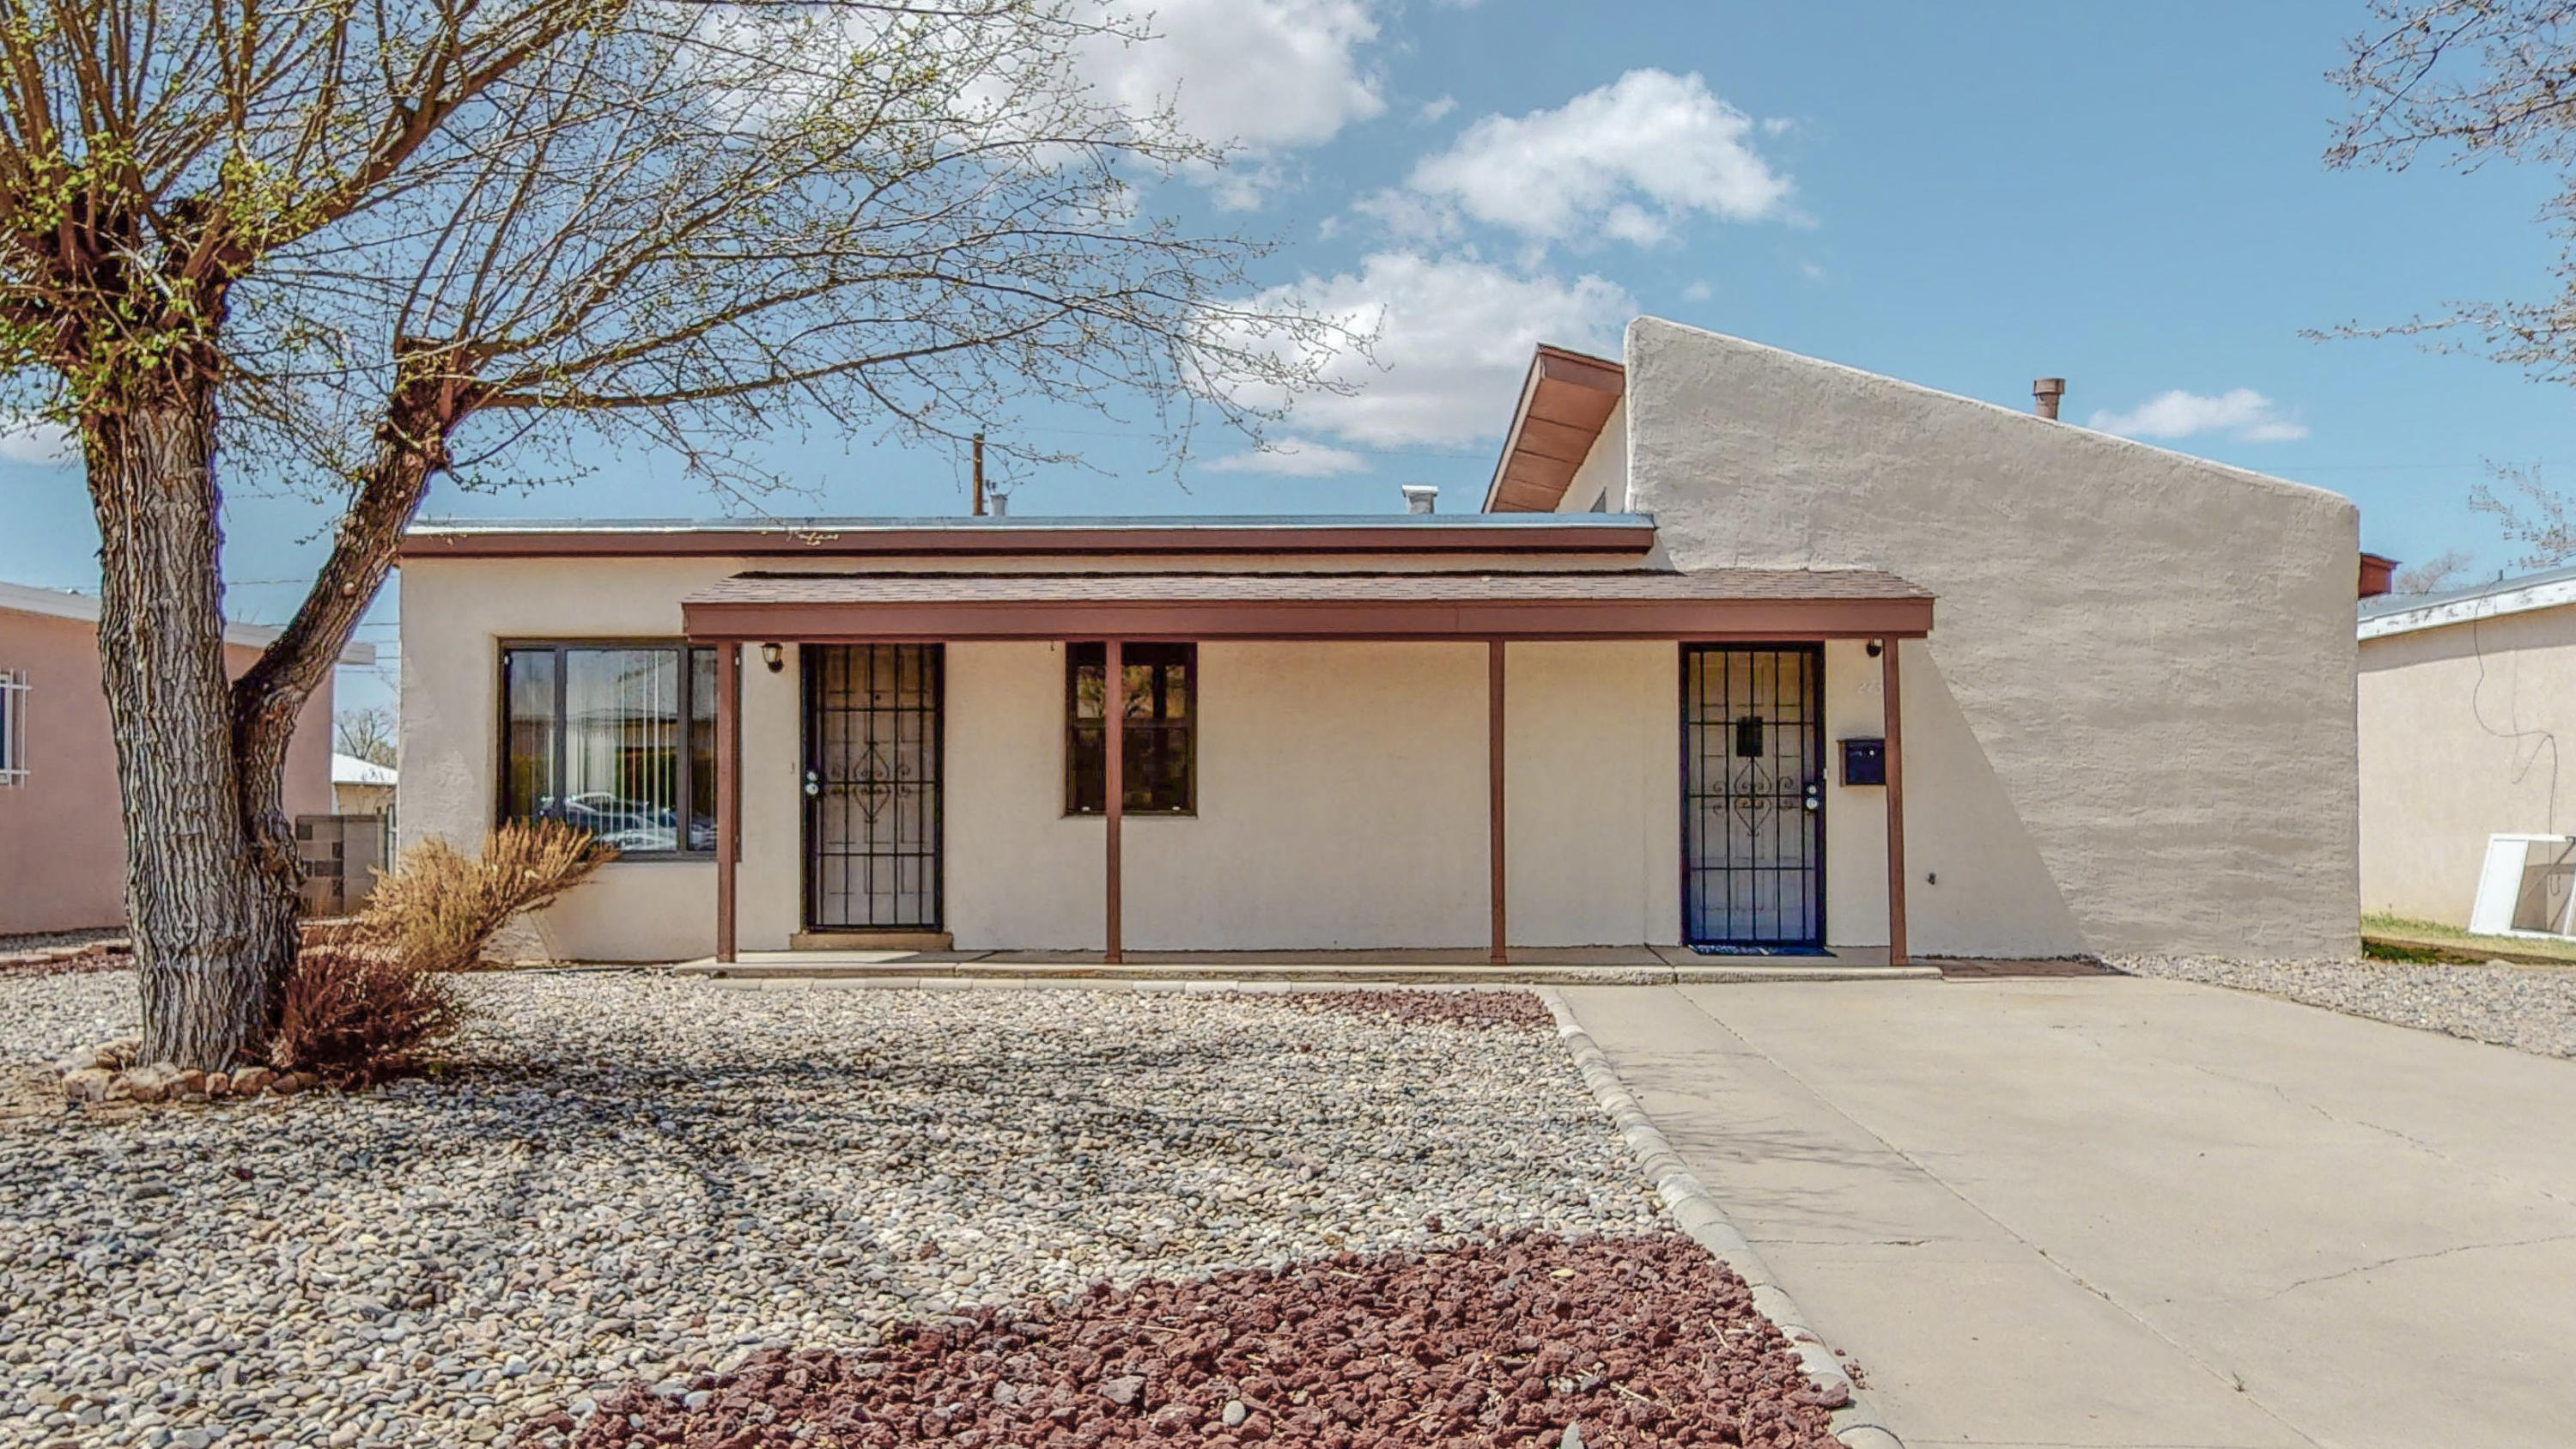 Can we talk about prime location?  Close to shopping and restaurants, you're only minutes from I-40 to reach any area of Albuquerque quickly.  This home features two living areas and three bedrooms.  If you are in need of backyard access, this has a cement slab just inside the large gate in the back.   The large storage shed is a huge perk if you like to tinker, work on cars, wood build or need a man cave/she shed.  Come see it today, it won't last long.